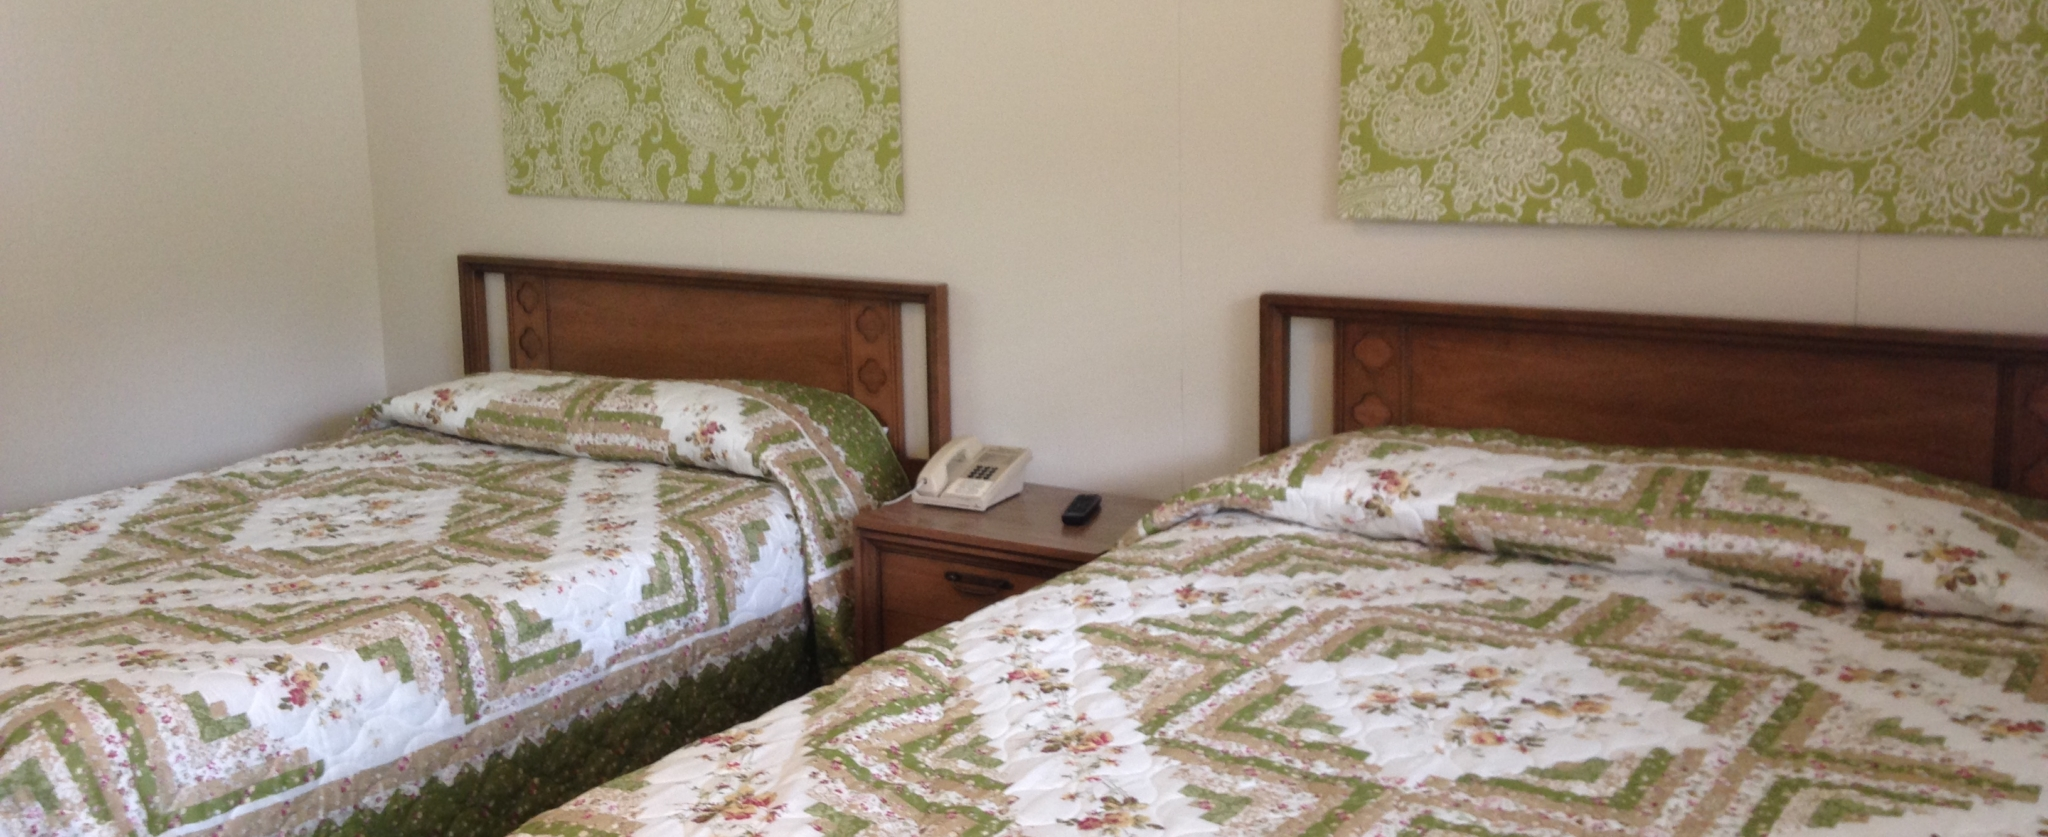 Two beds with geometric-patterned bedding